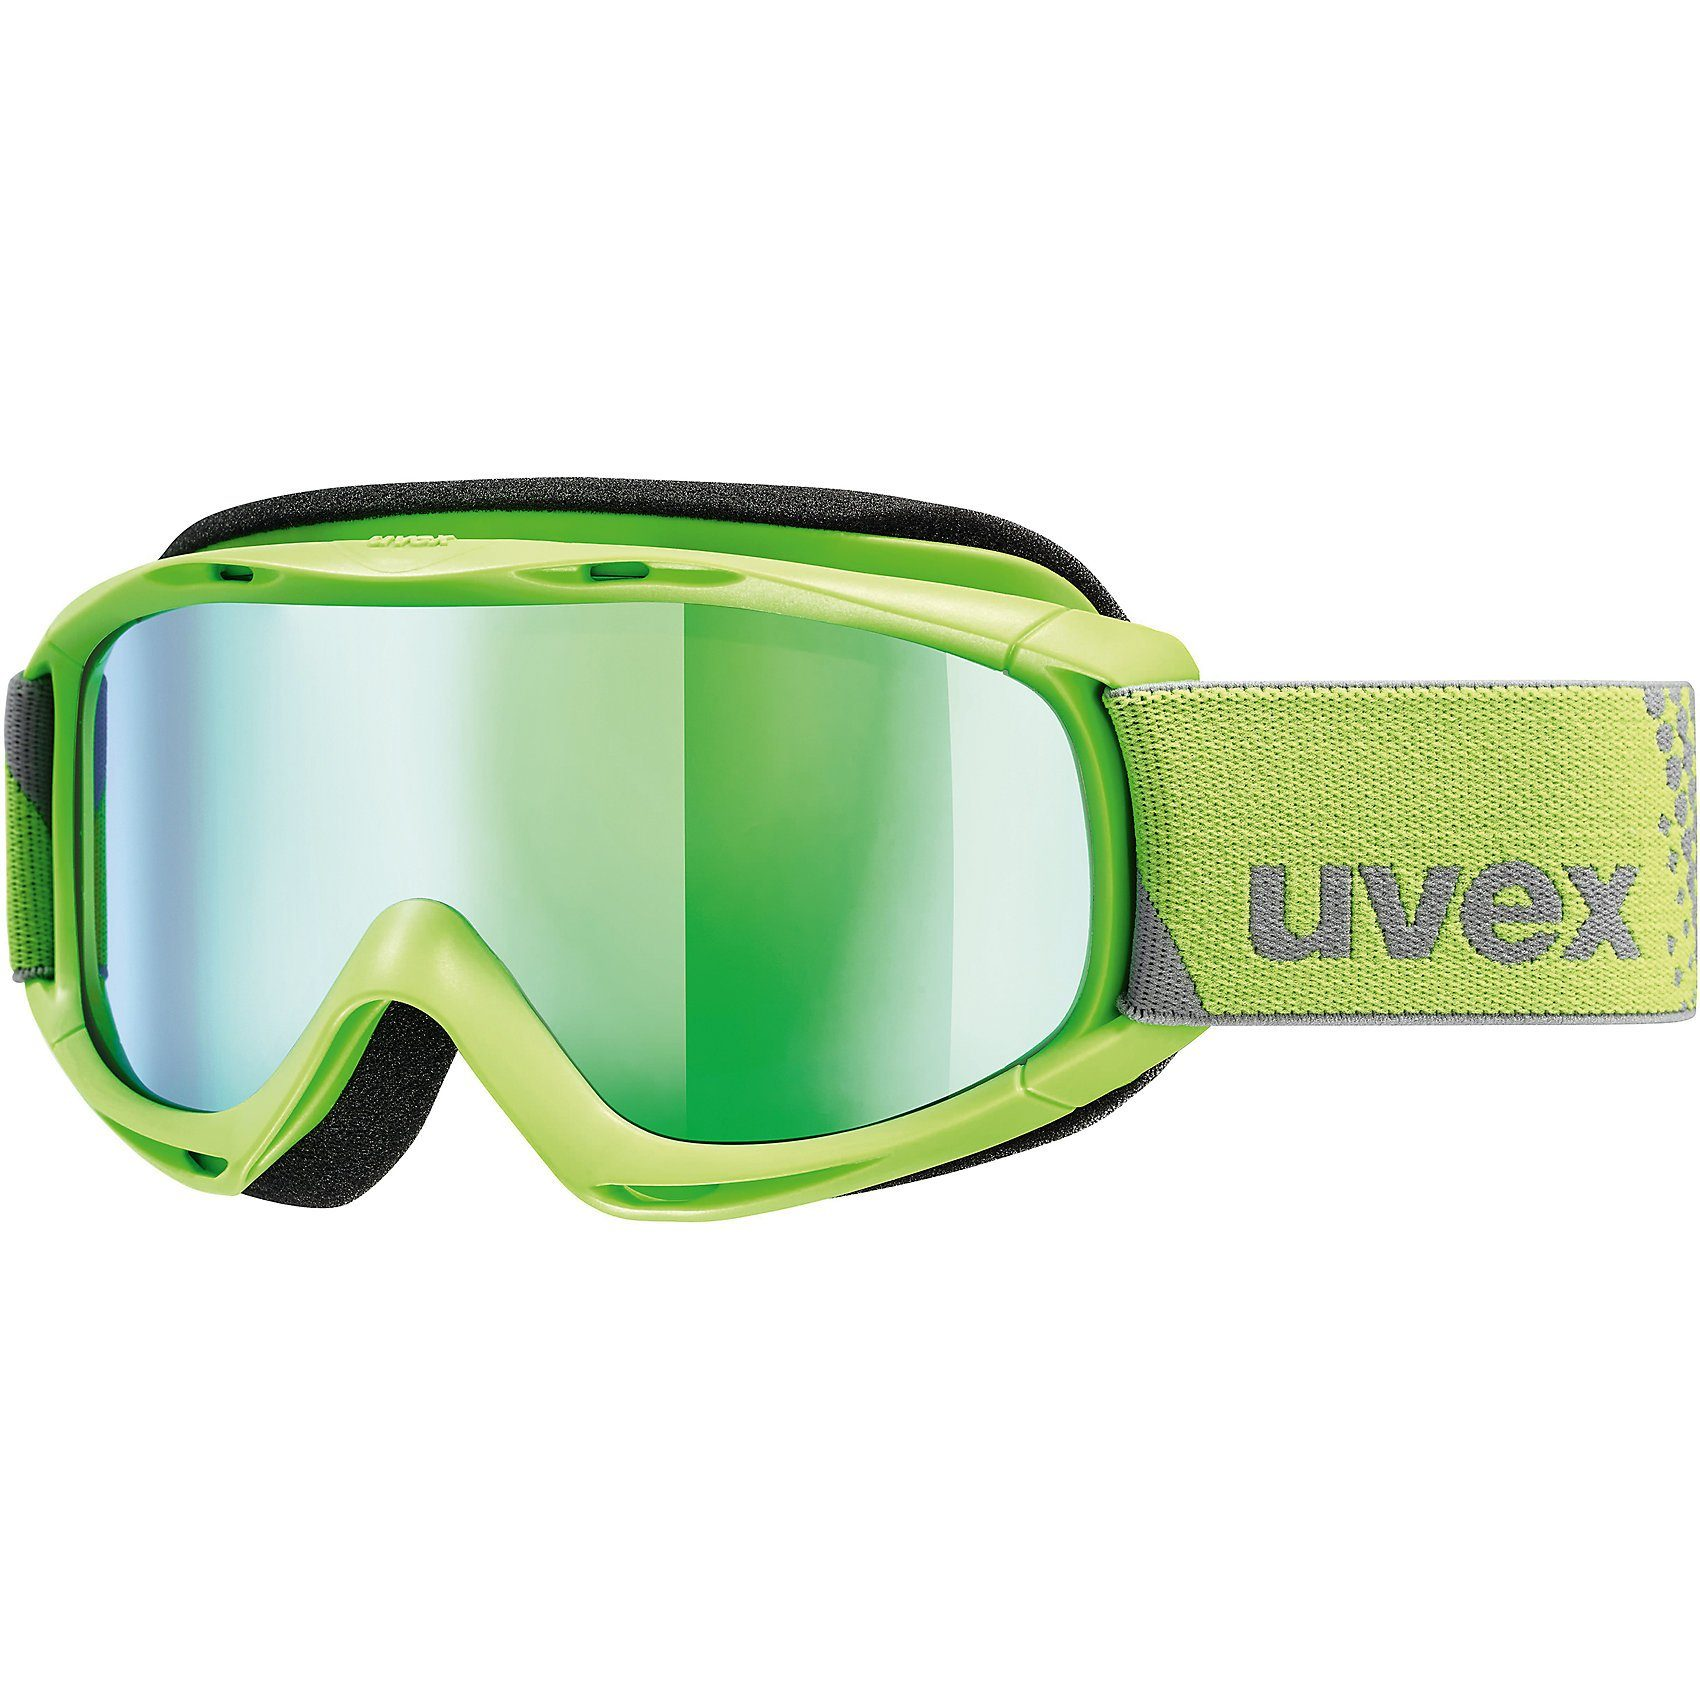 Uvex Skibrille slider FM, applegreen dl/green-lgl